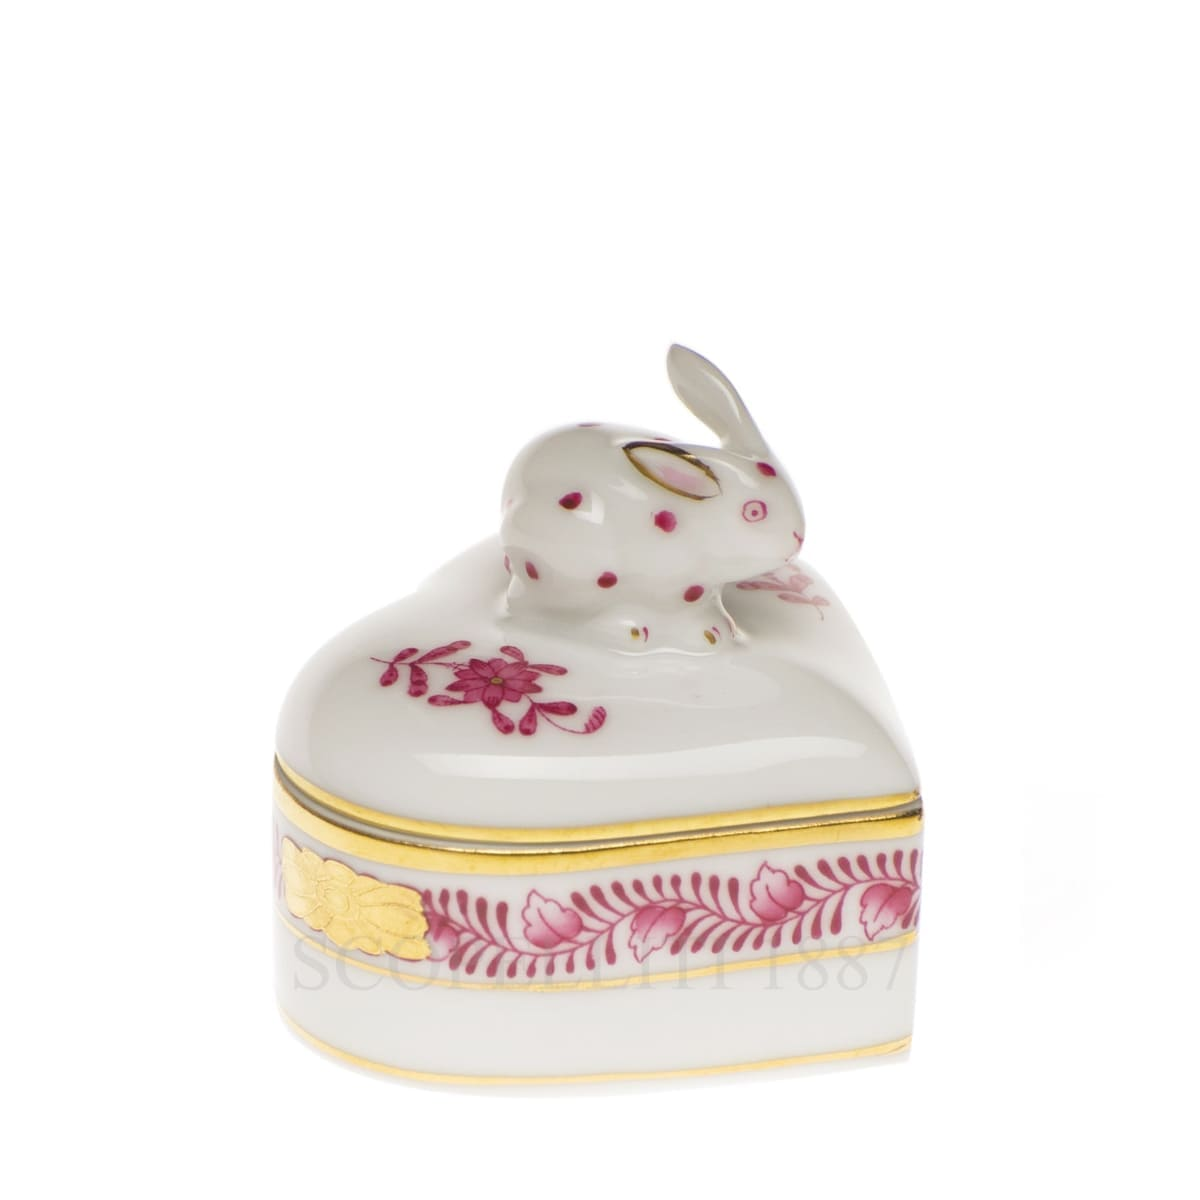 herend handpainted porcelain heart box with bunny pink